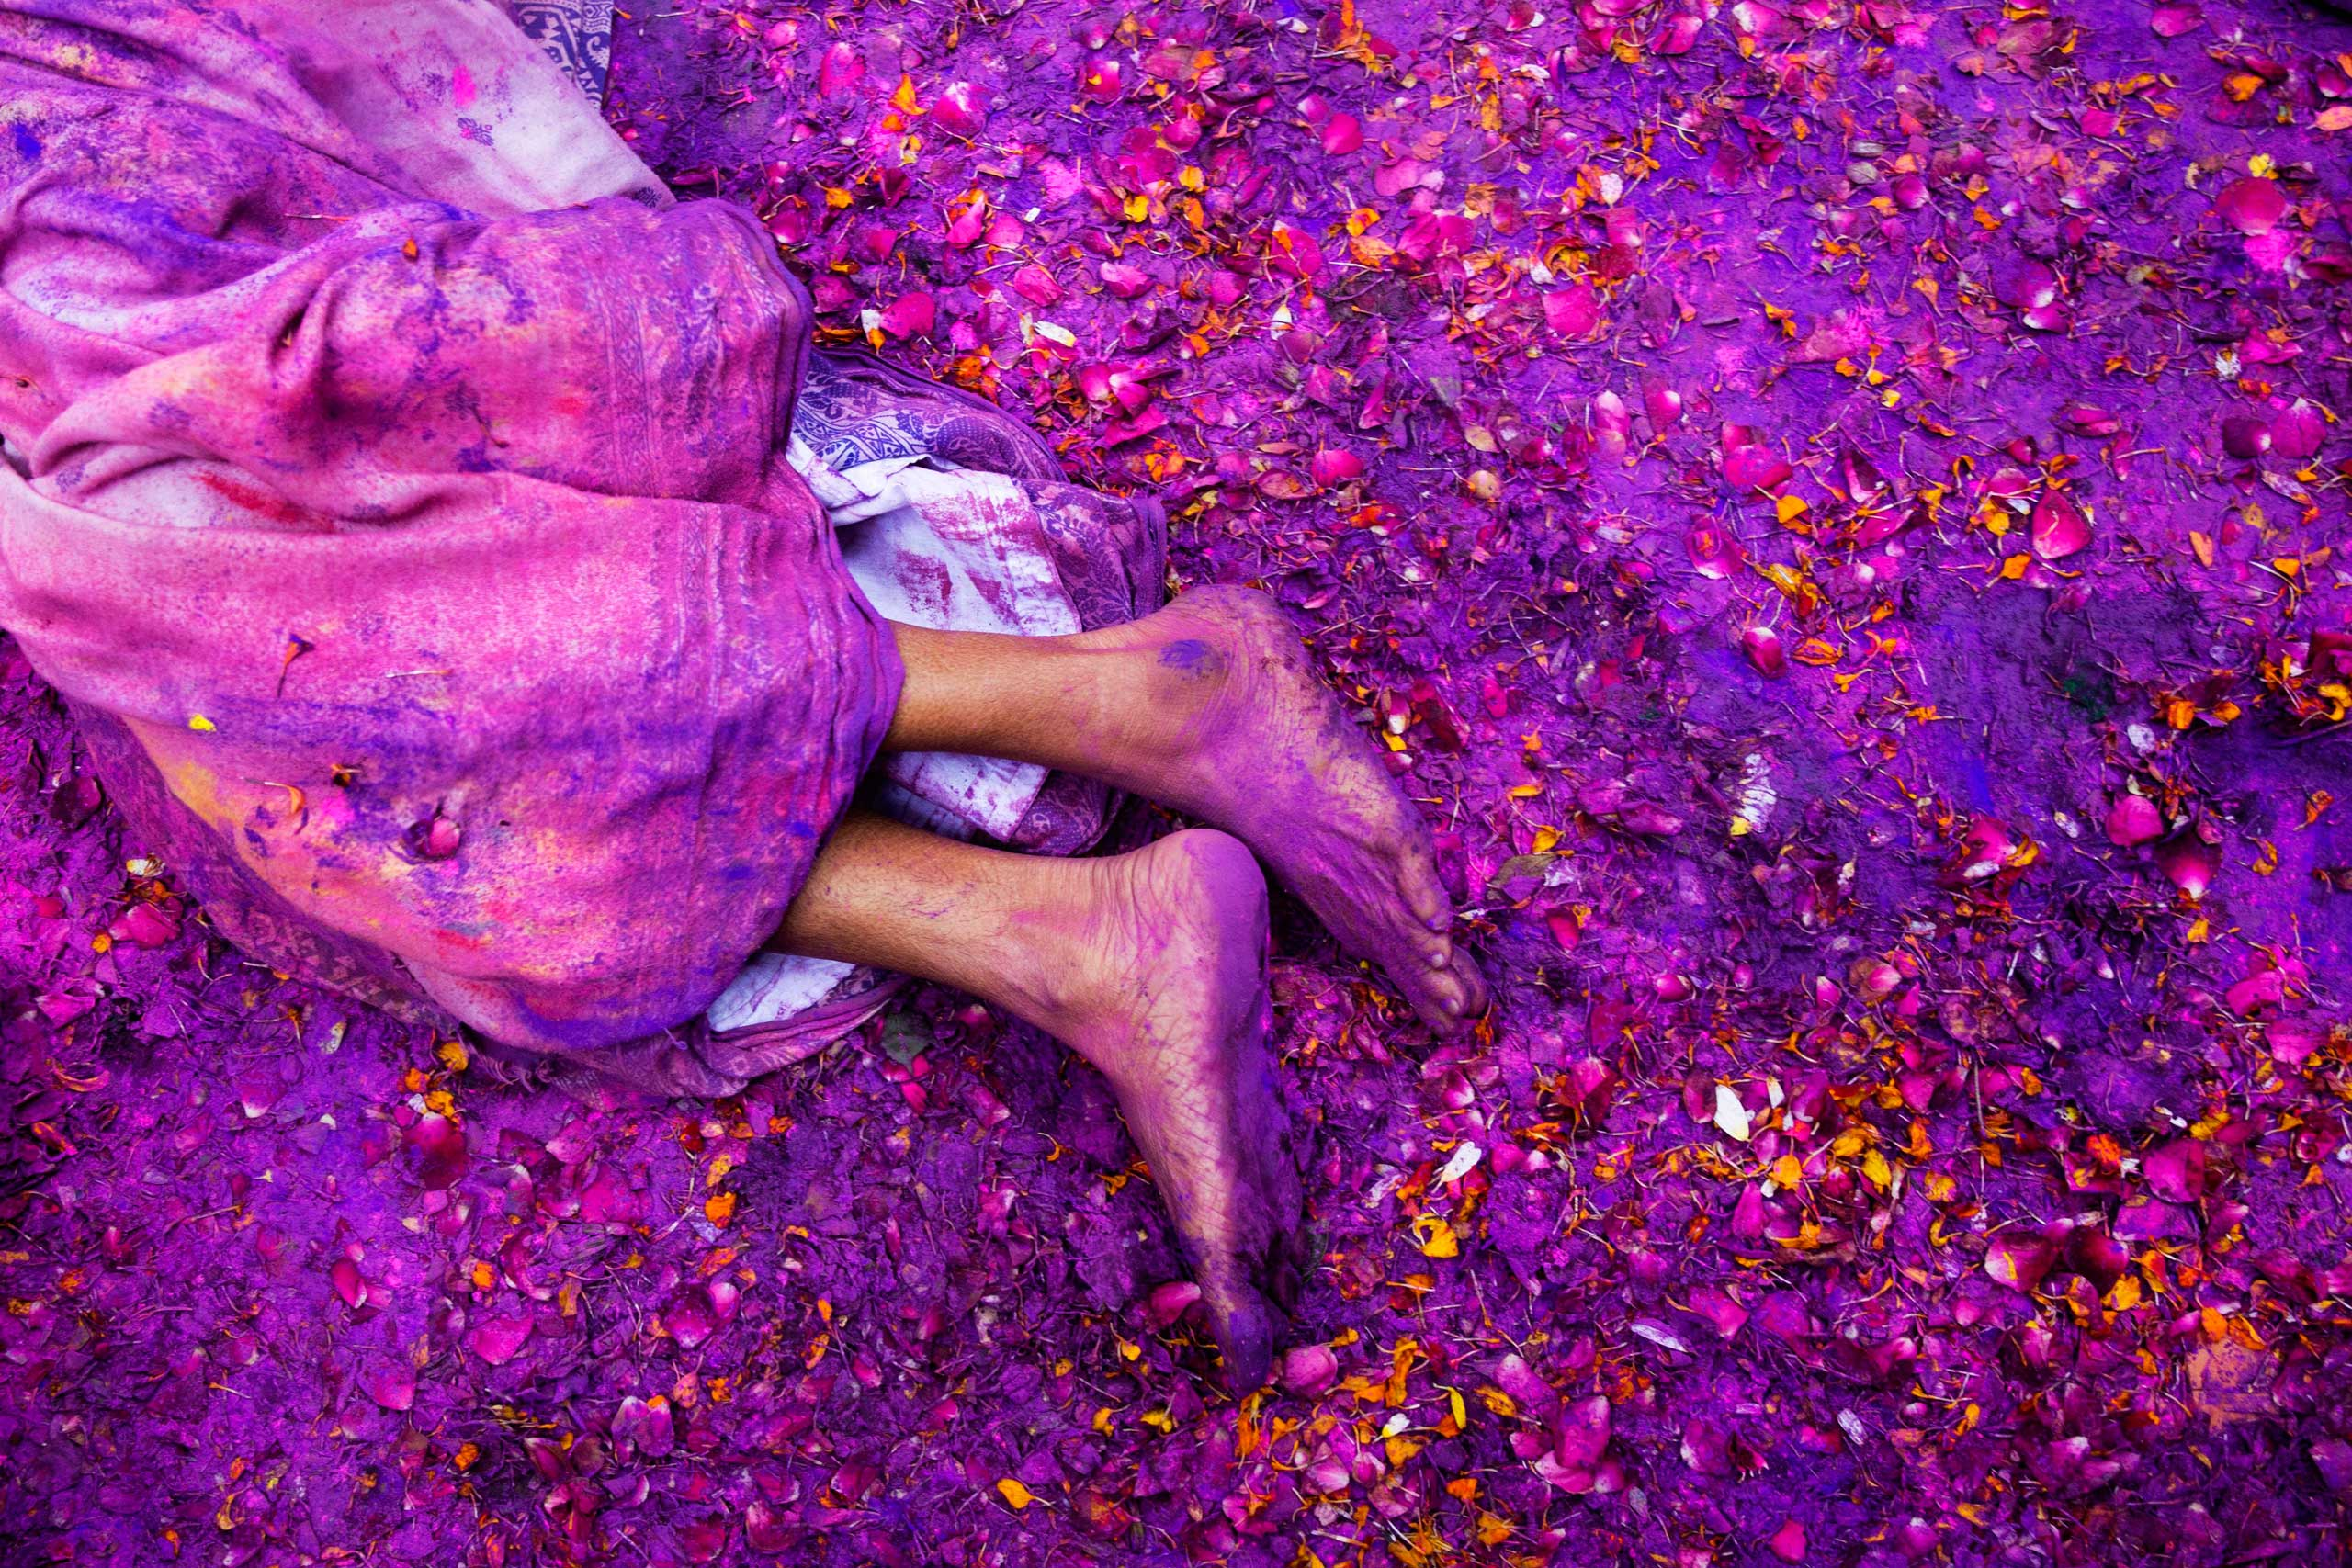 A Hindu widow lies on a sludgy ground filled with a mixture of colored powder, water and flower petals during celebrations to mark Holi, the Hindu festival of colors, at the Meera Sahabhagini Widow Ashram in Vrindavan, India, March 3, 2015.